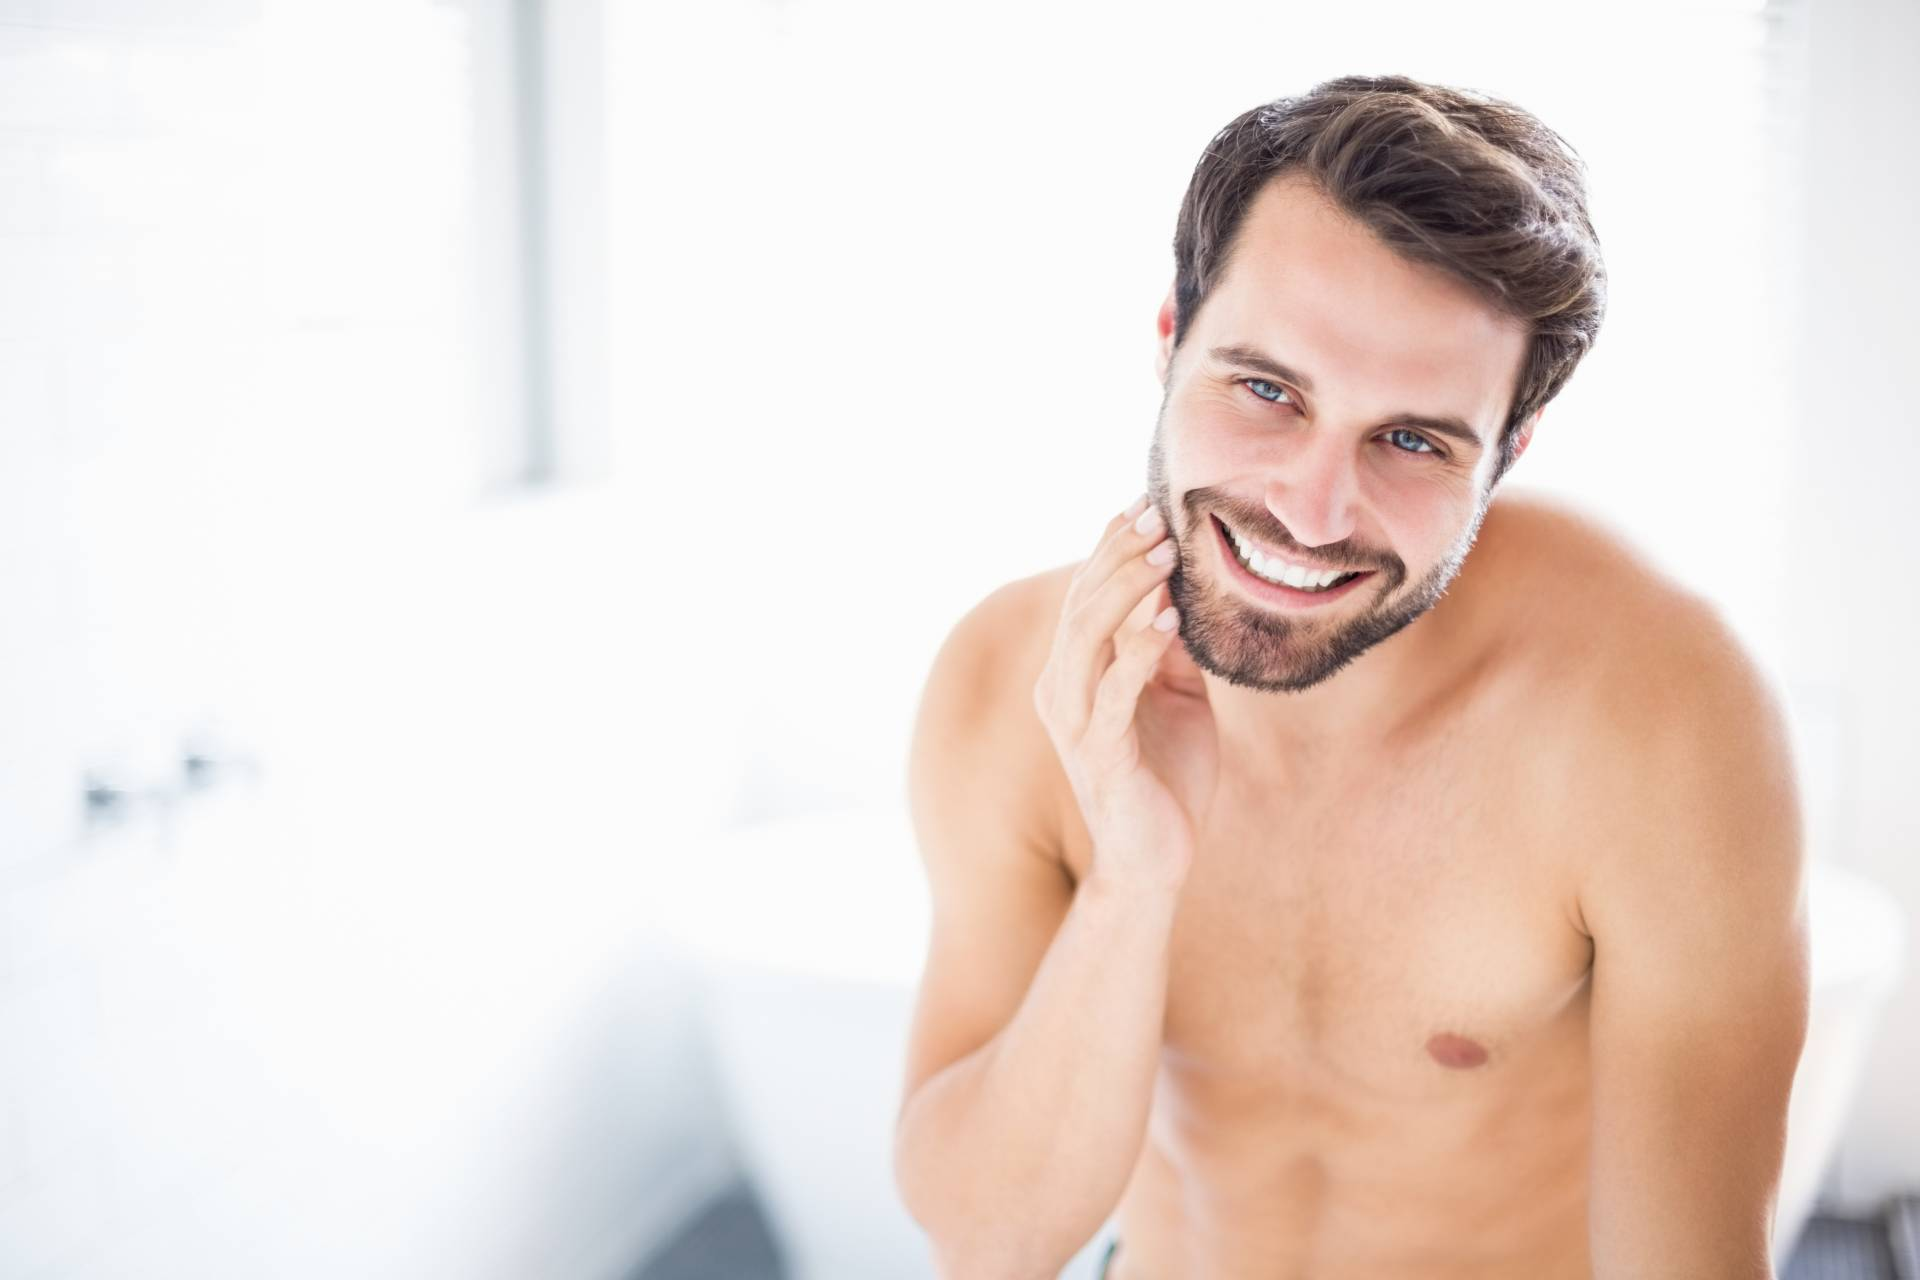 Today Is National Men's Grooming Day - Let's Celebrate